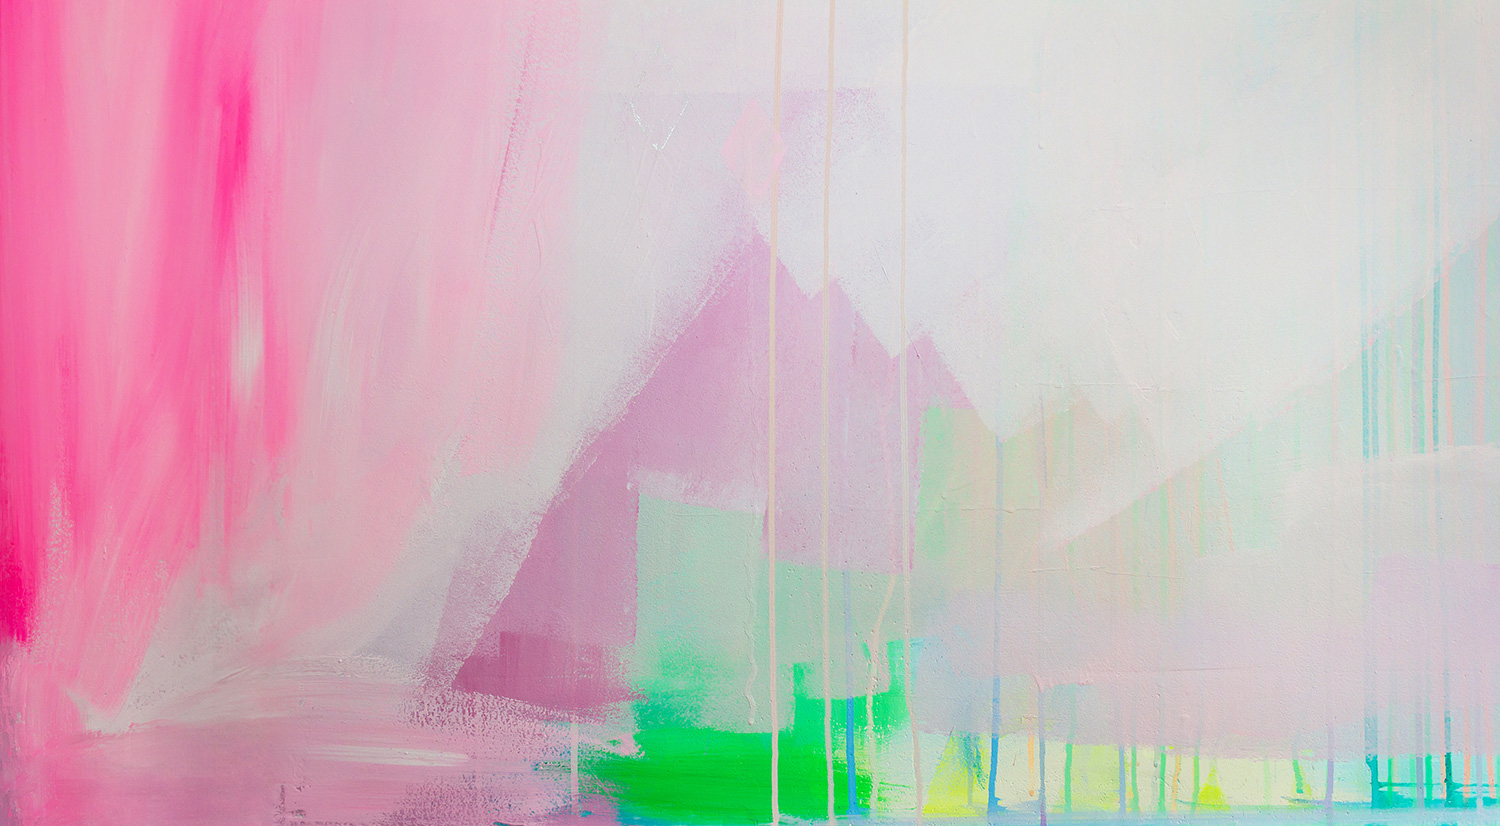 Closeup detail shot of pastel abstract mural, featuring dripping paint, painterly brushwork and soft colors.